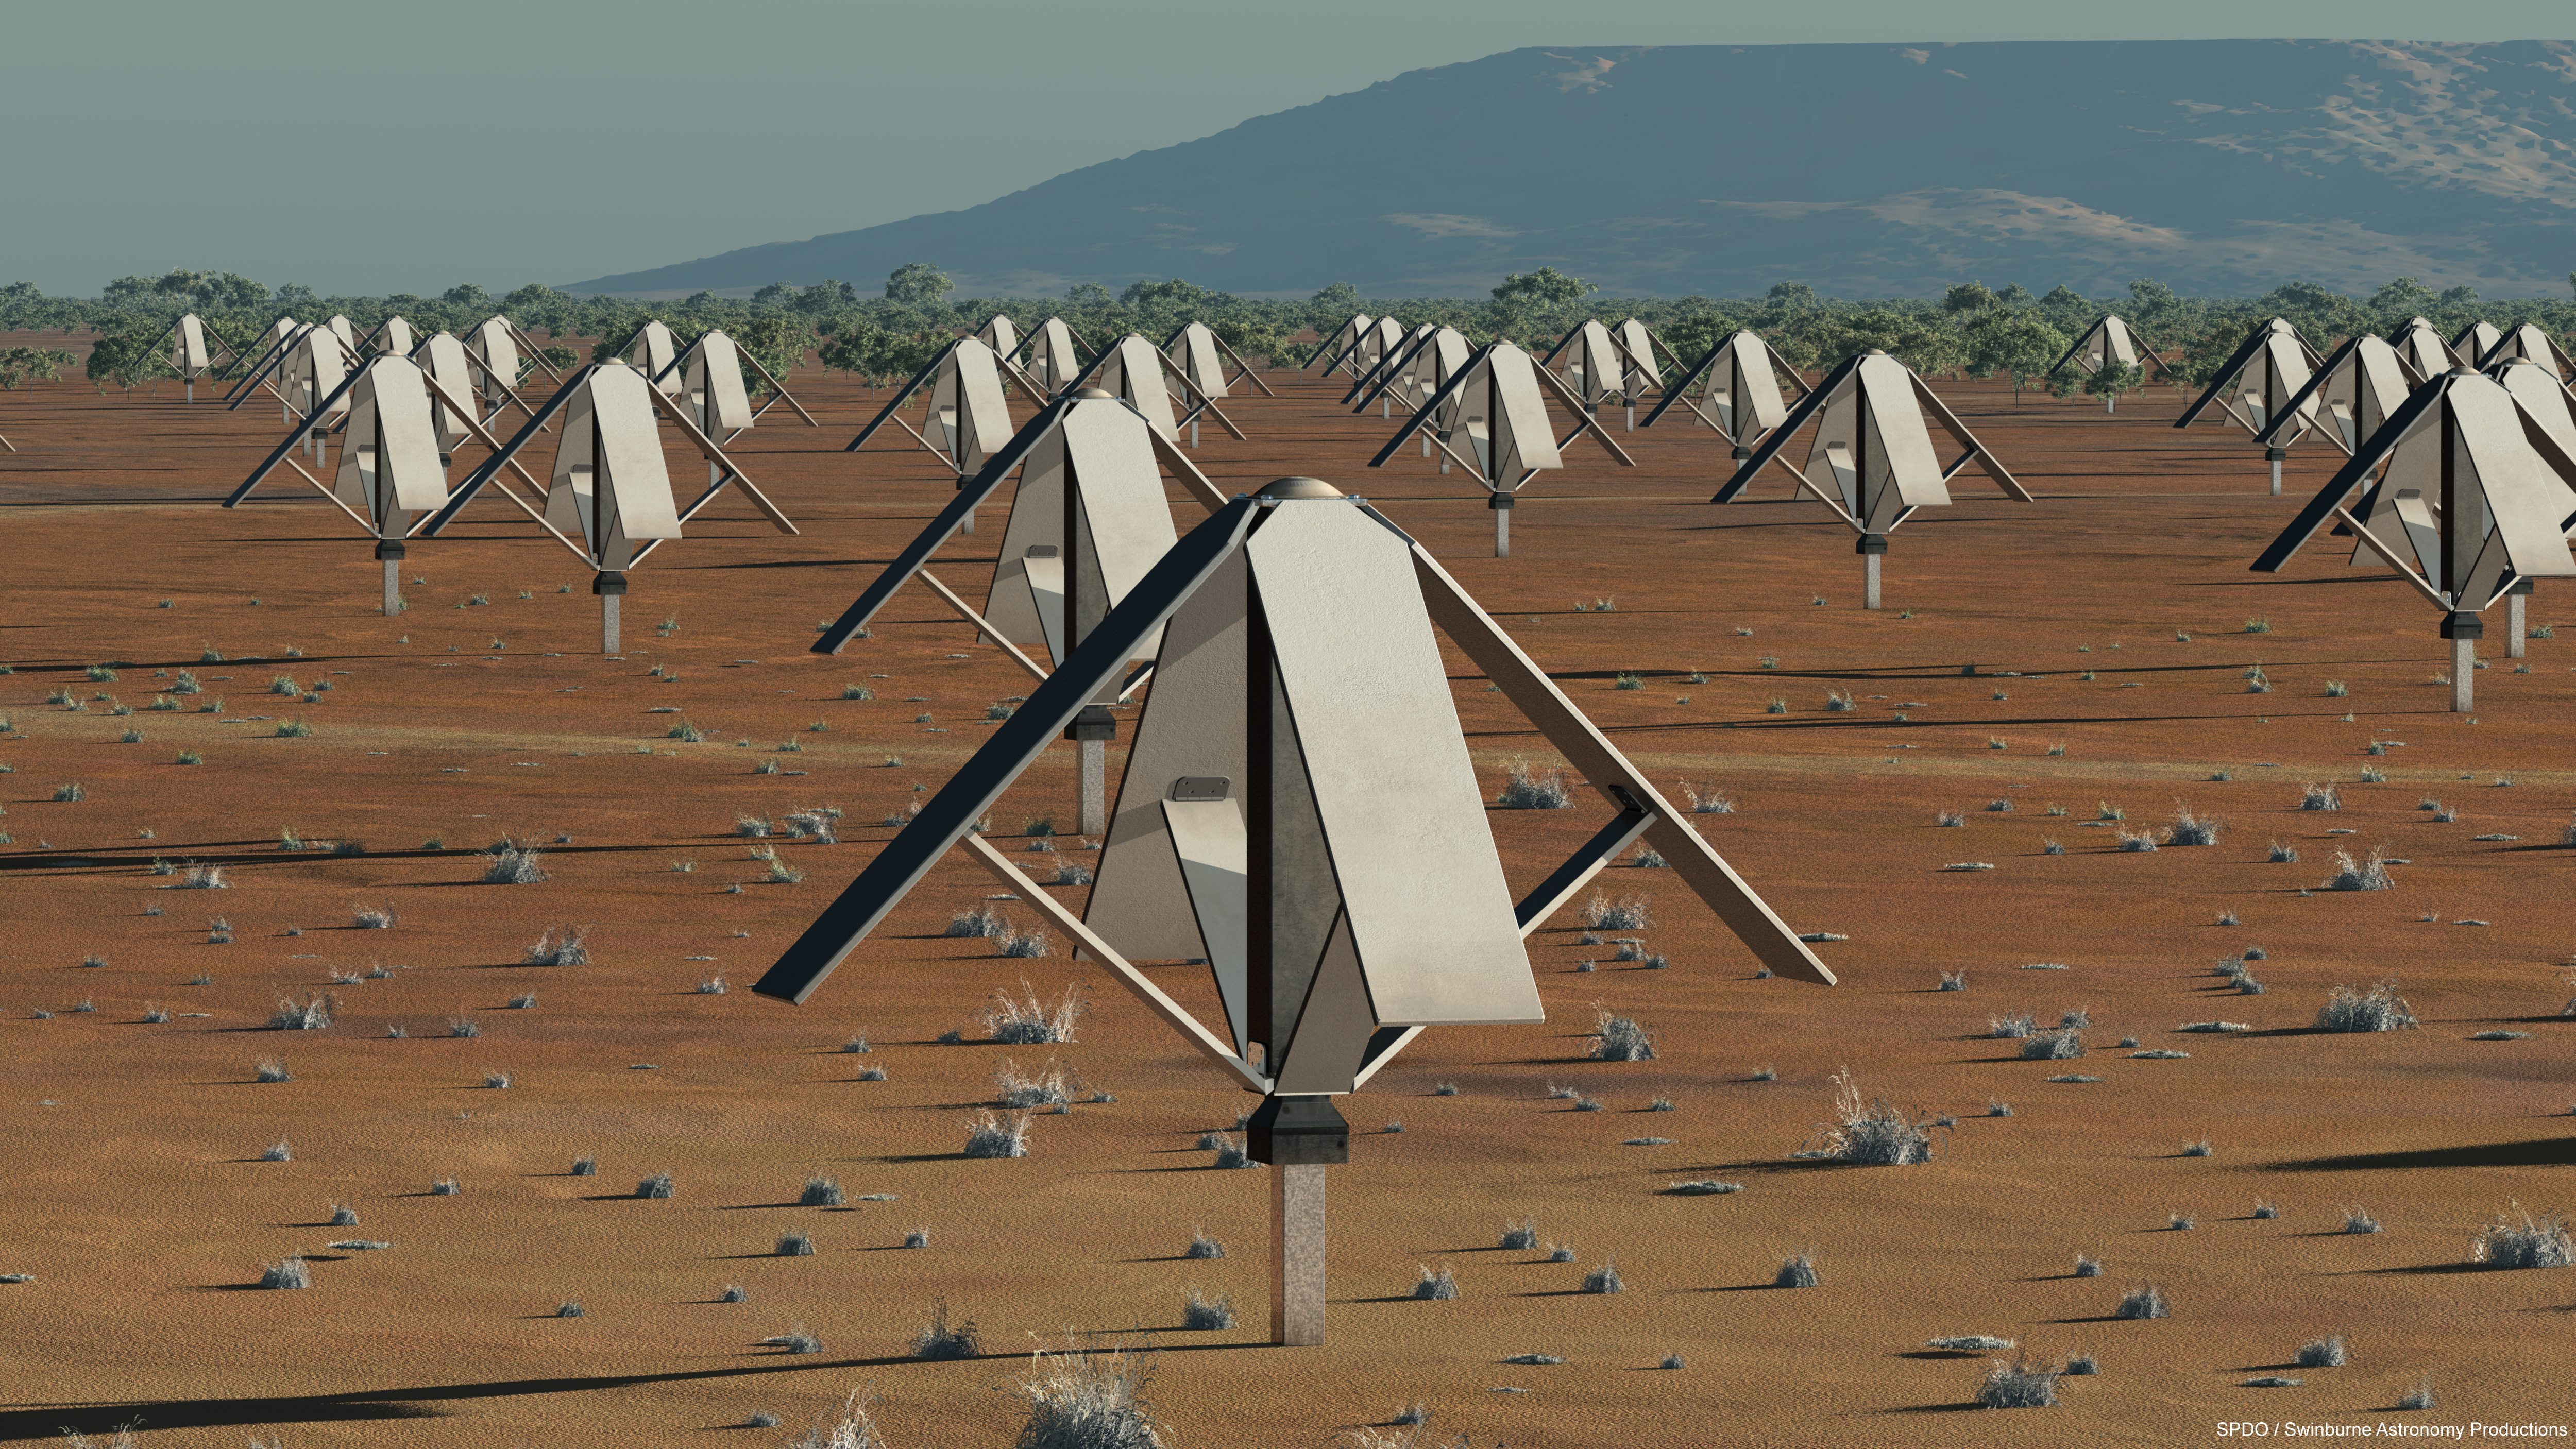 File:SKA sparse array big.jpg - Wikipedia, the free encyclopedia